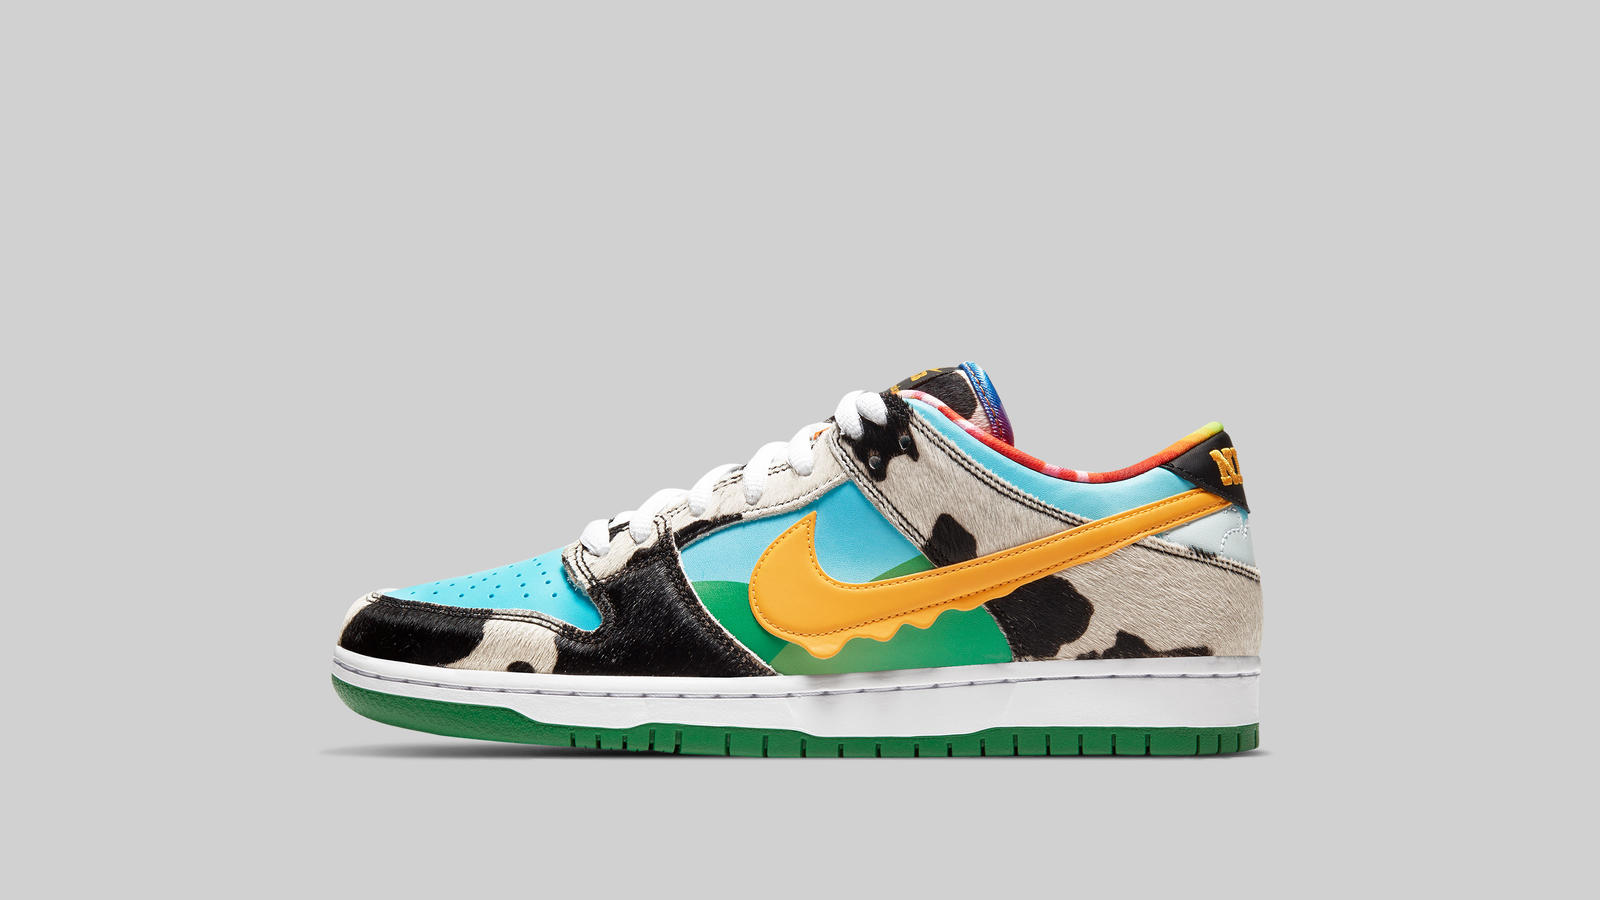 nike-dunk-low-pro-ben-&-jerry's-official-images-and-release-date